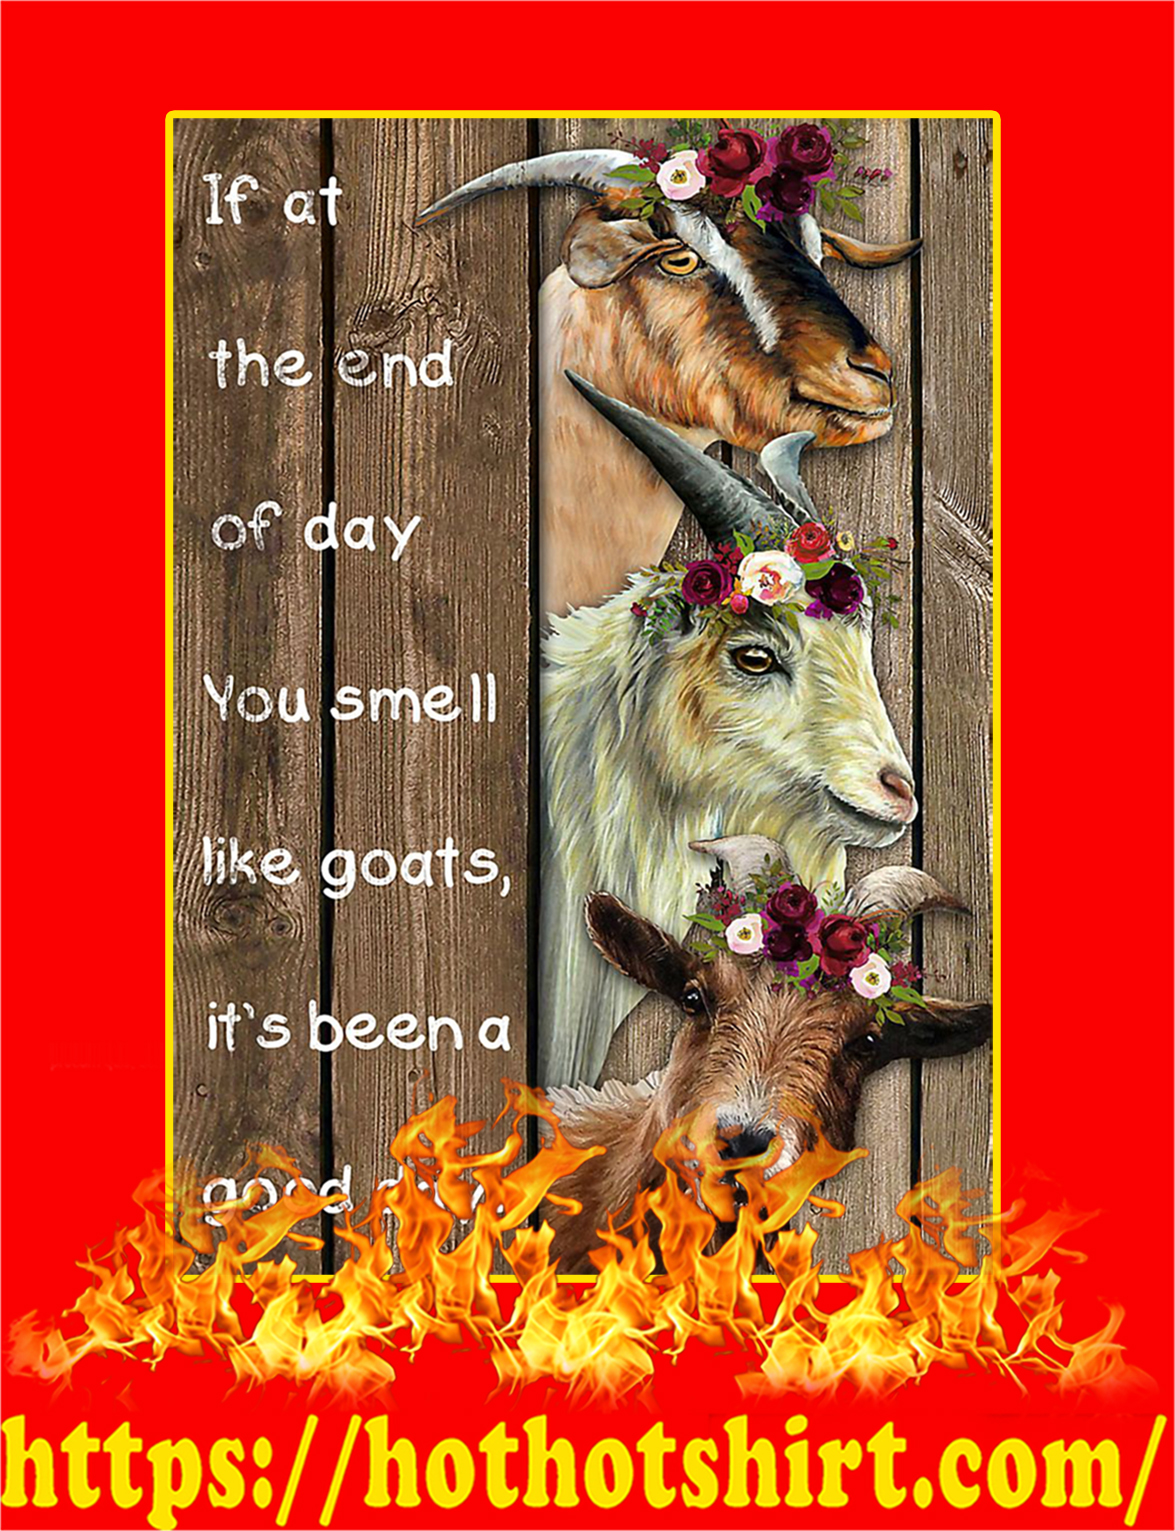 If At The End Of Day You Smell Like Goats Poster - A2